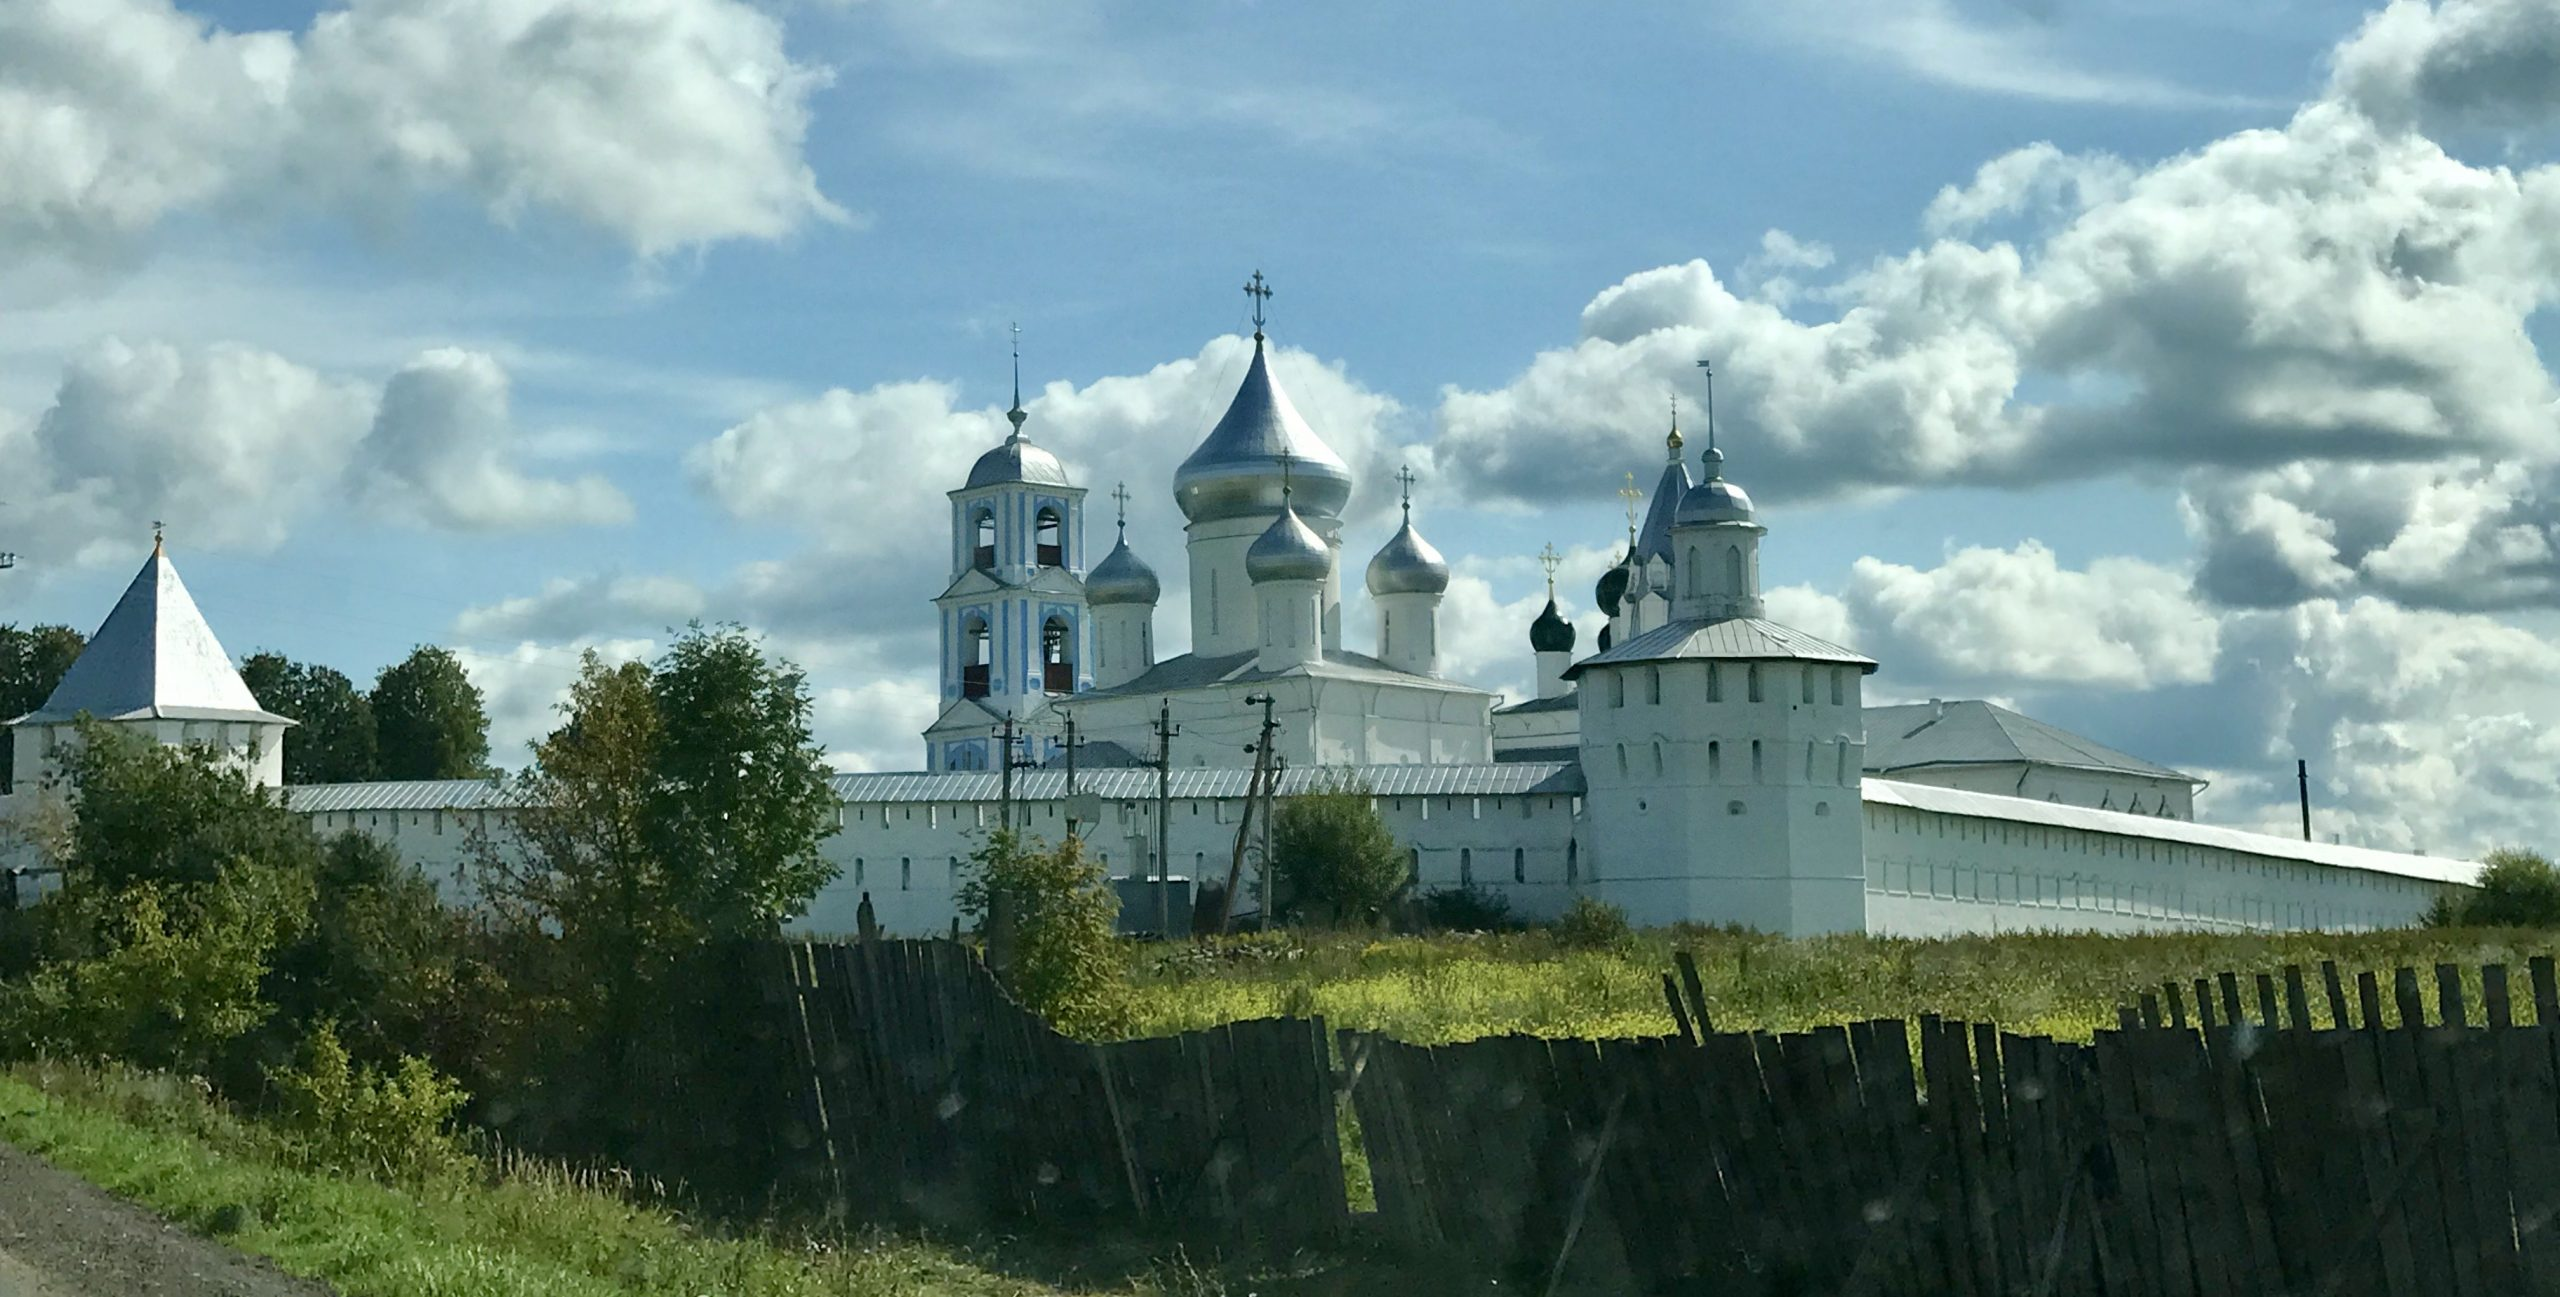 Trip to Russia. Day 8. Along the Golden Ring through Pereslavl-Zalesski to the train from Moscow to Saint Petersburg